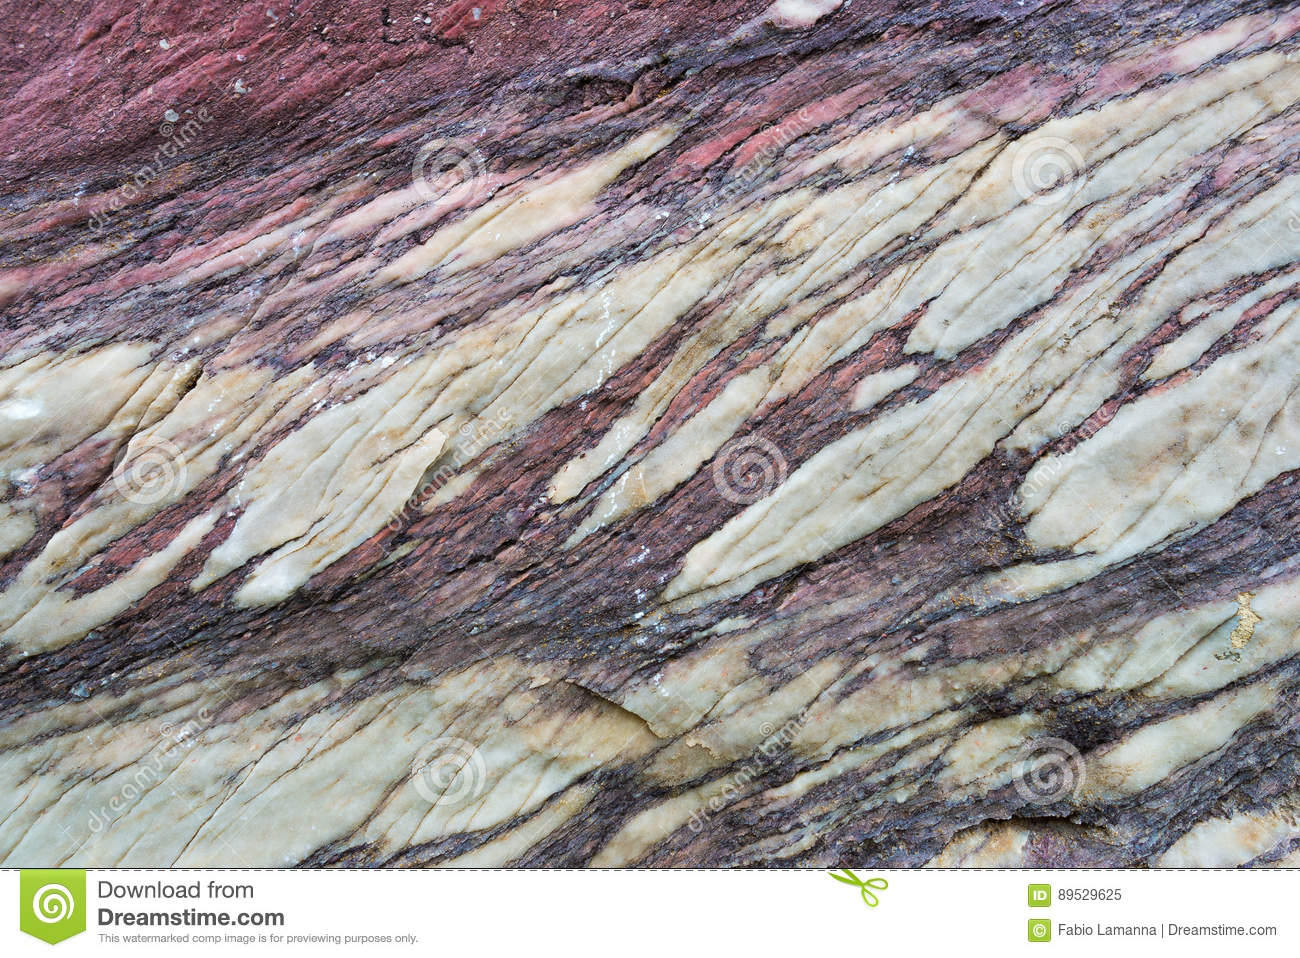 Close up of colorful rock surface, natural background, pattern and texture. Metamorphic white quartzite folded and fractured toget